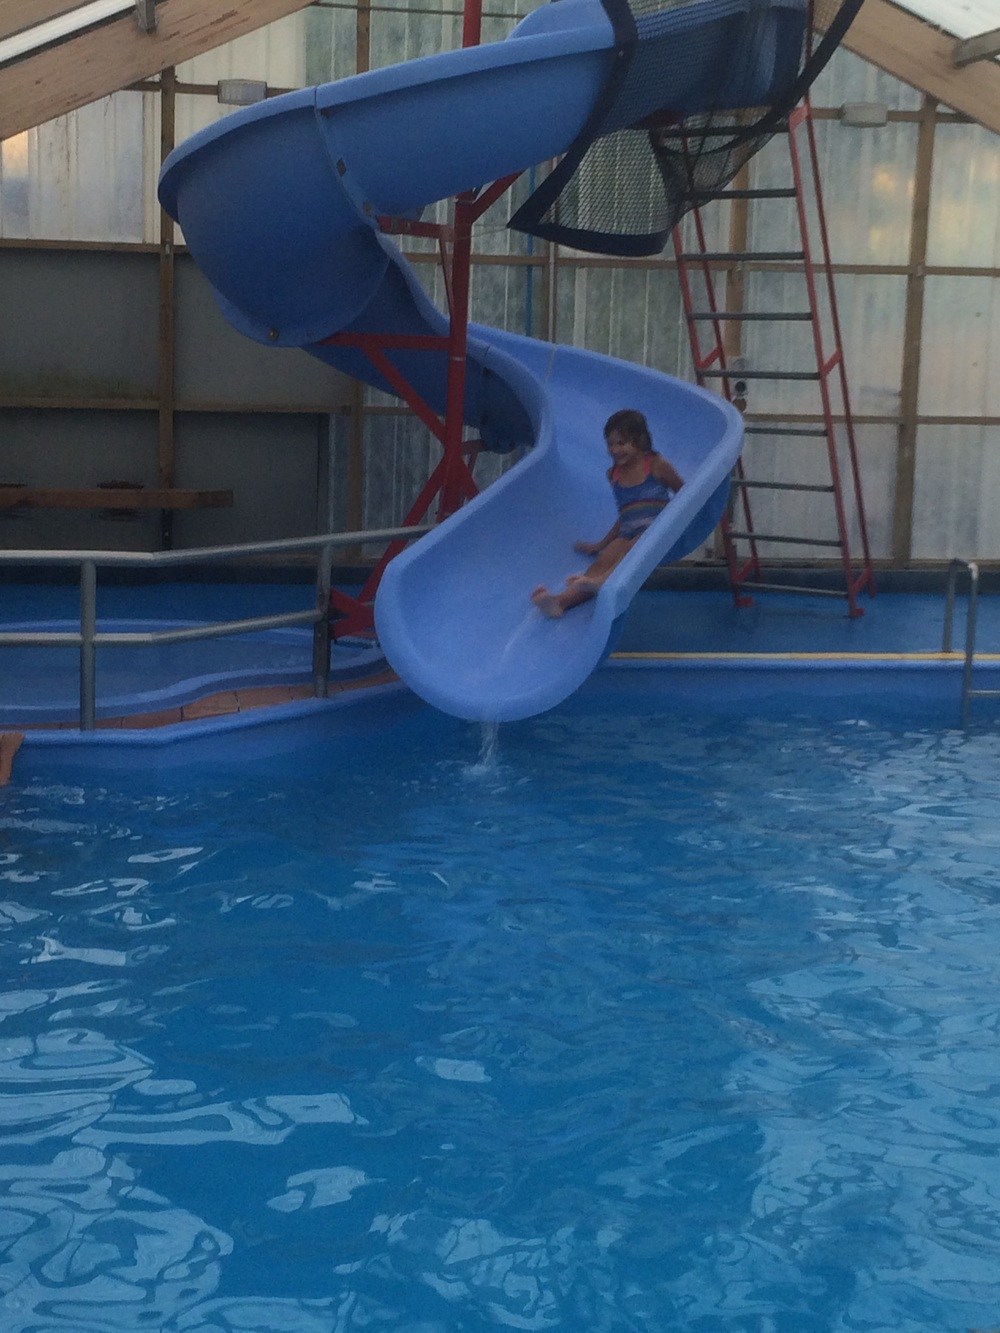 Hannah coming down the water slide.